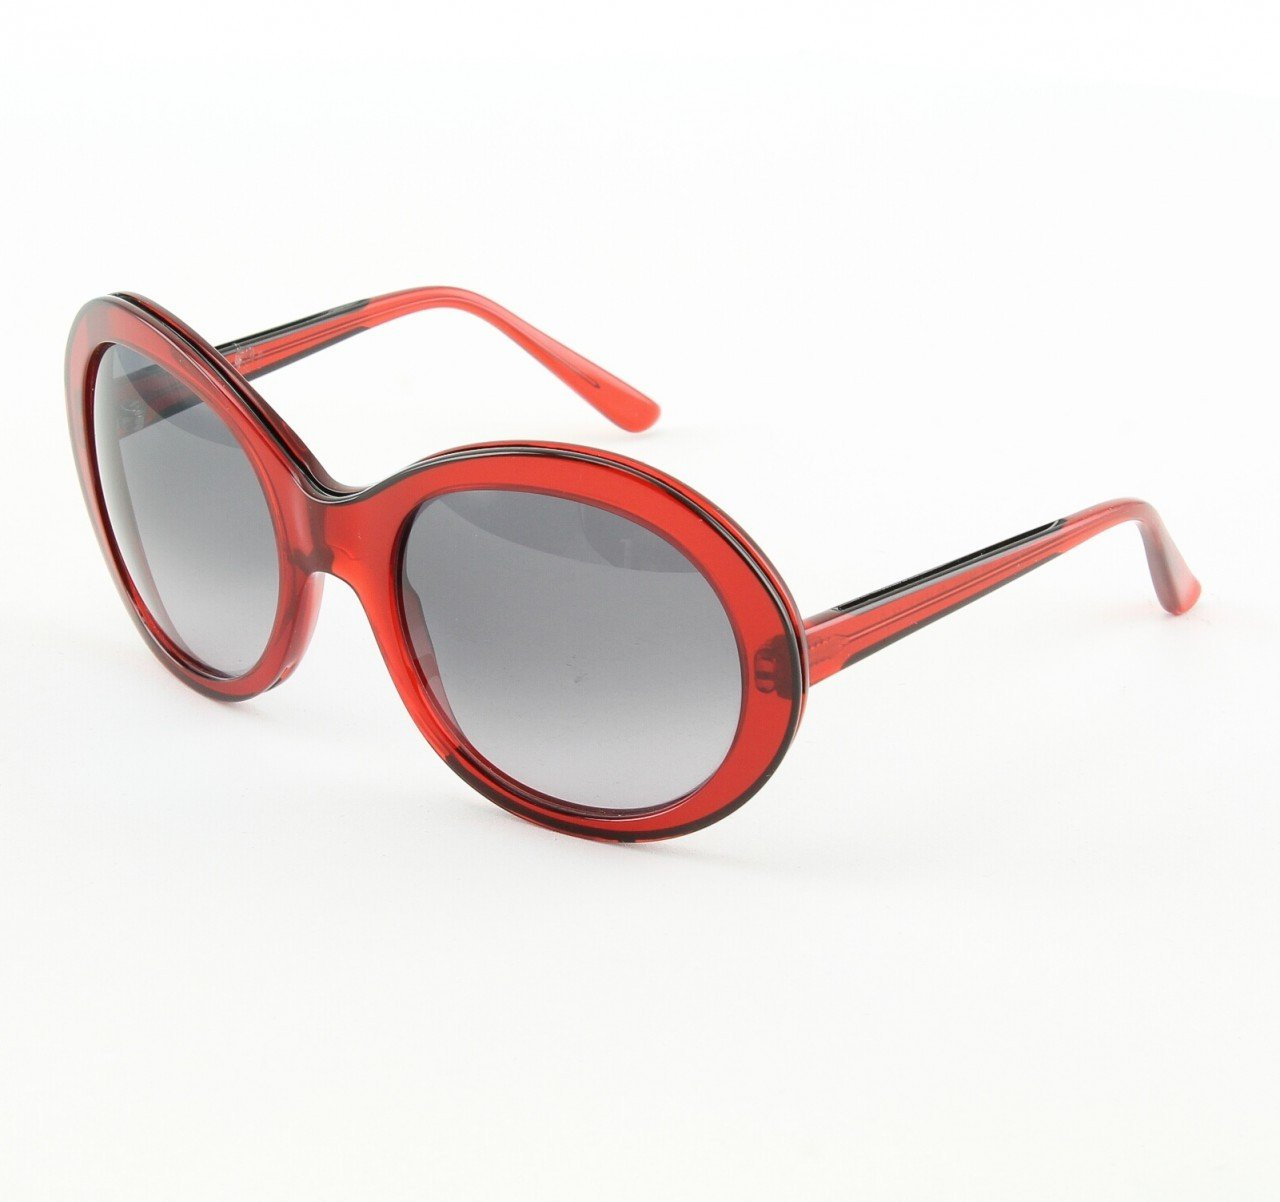 Marni MA162S Sunglasses 02 Oversized Translucent Ruby Red, Gray Gradient Lenses